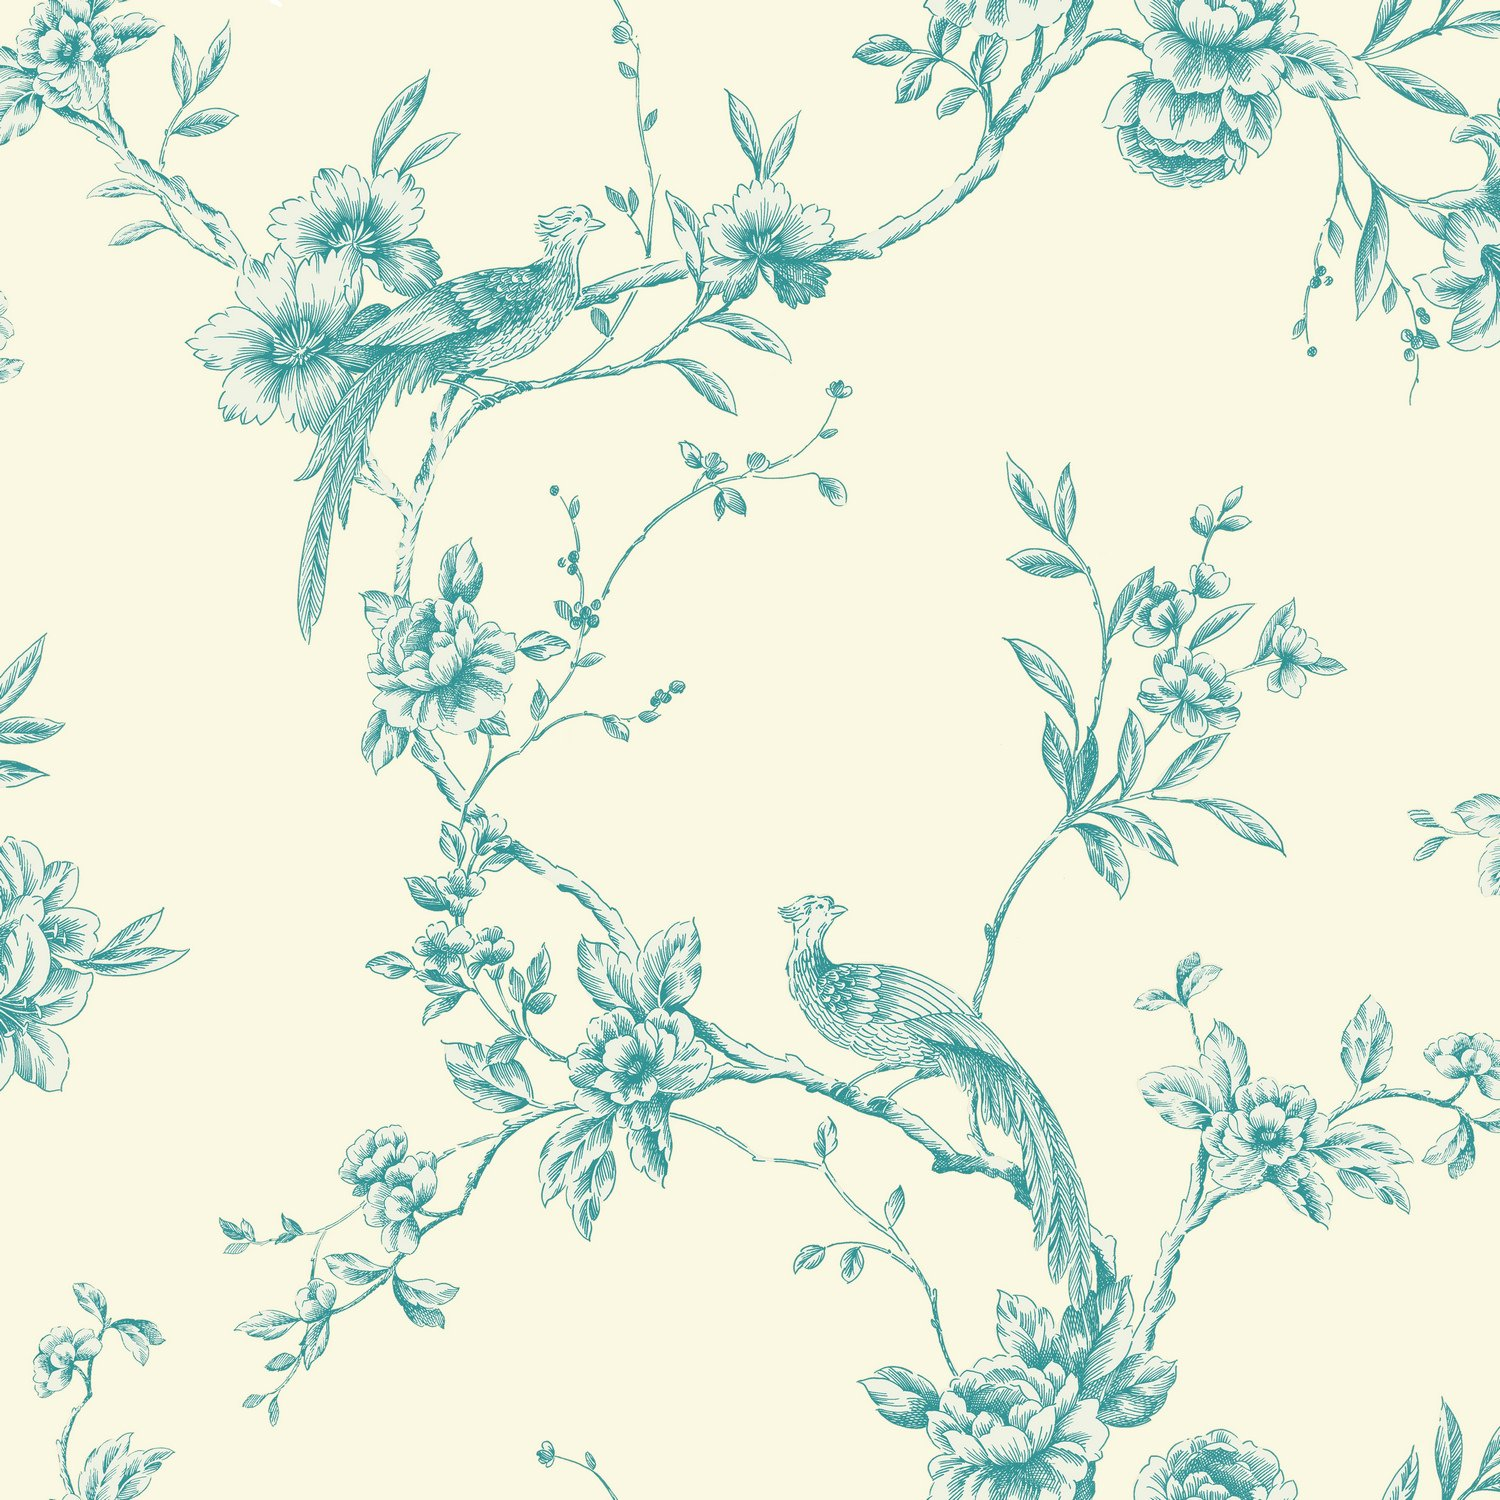 Arthouse 425003 Chinoise Wallpaper Teal 53 cm x 1005 m Amazon 1500x1500